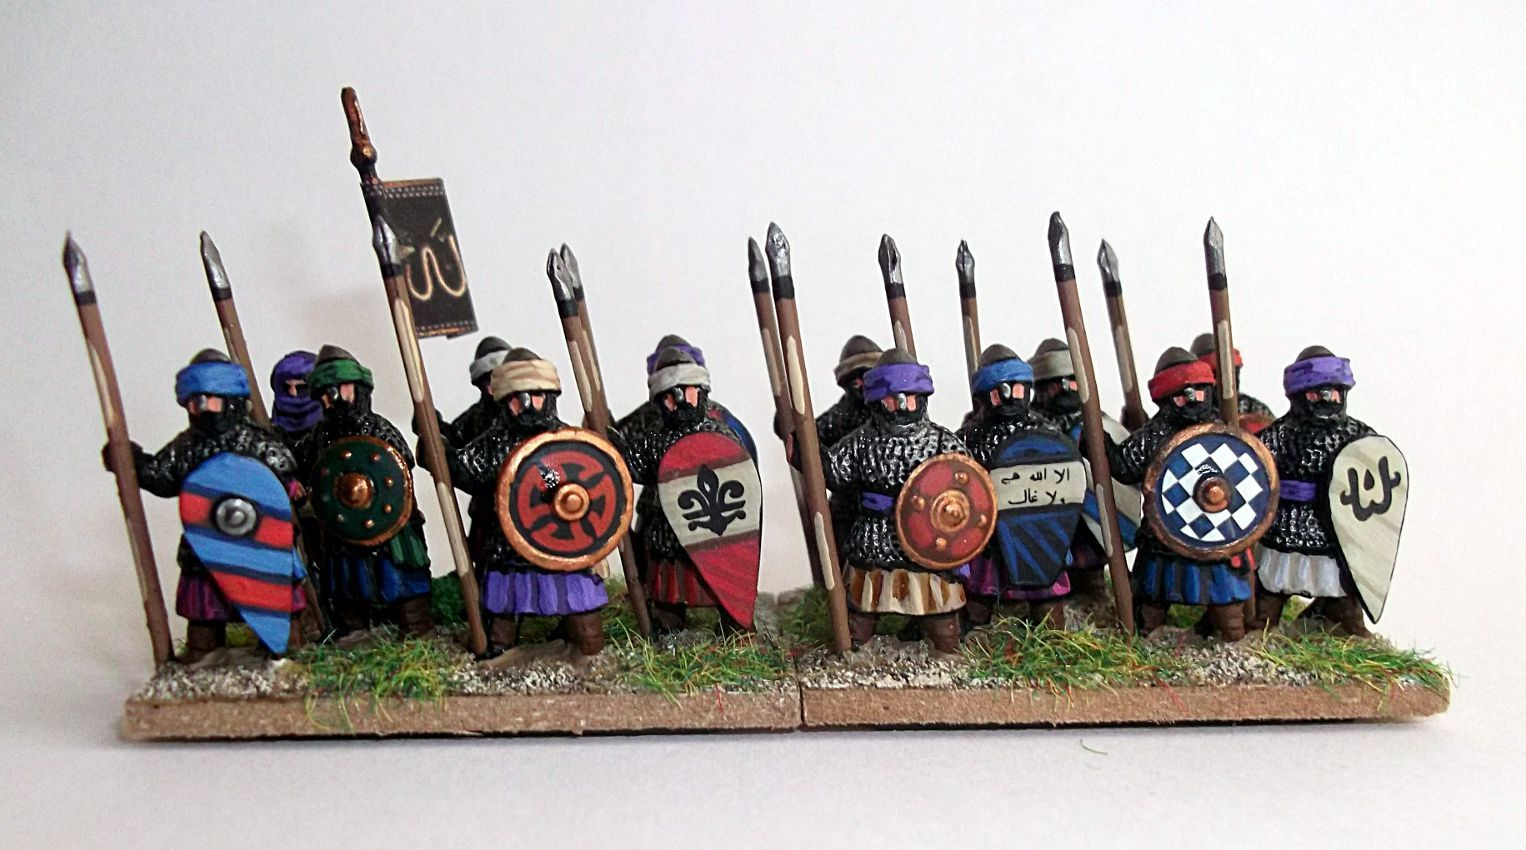 AdG : Les lanciers arabes 15mm (2).